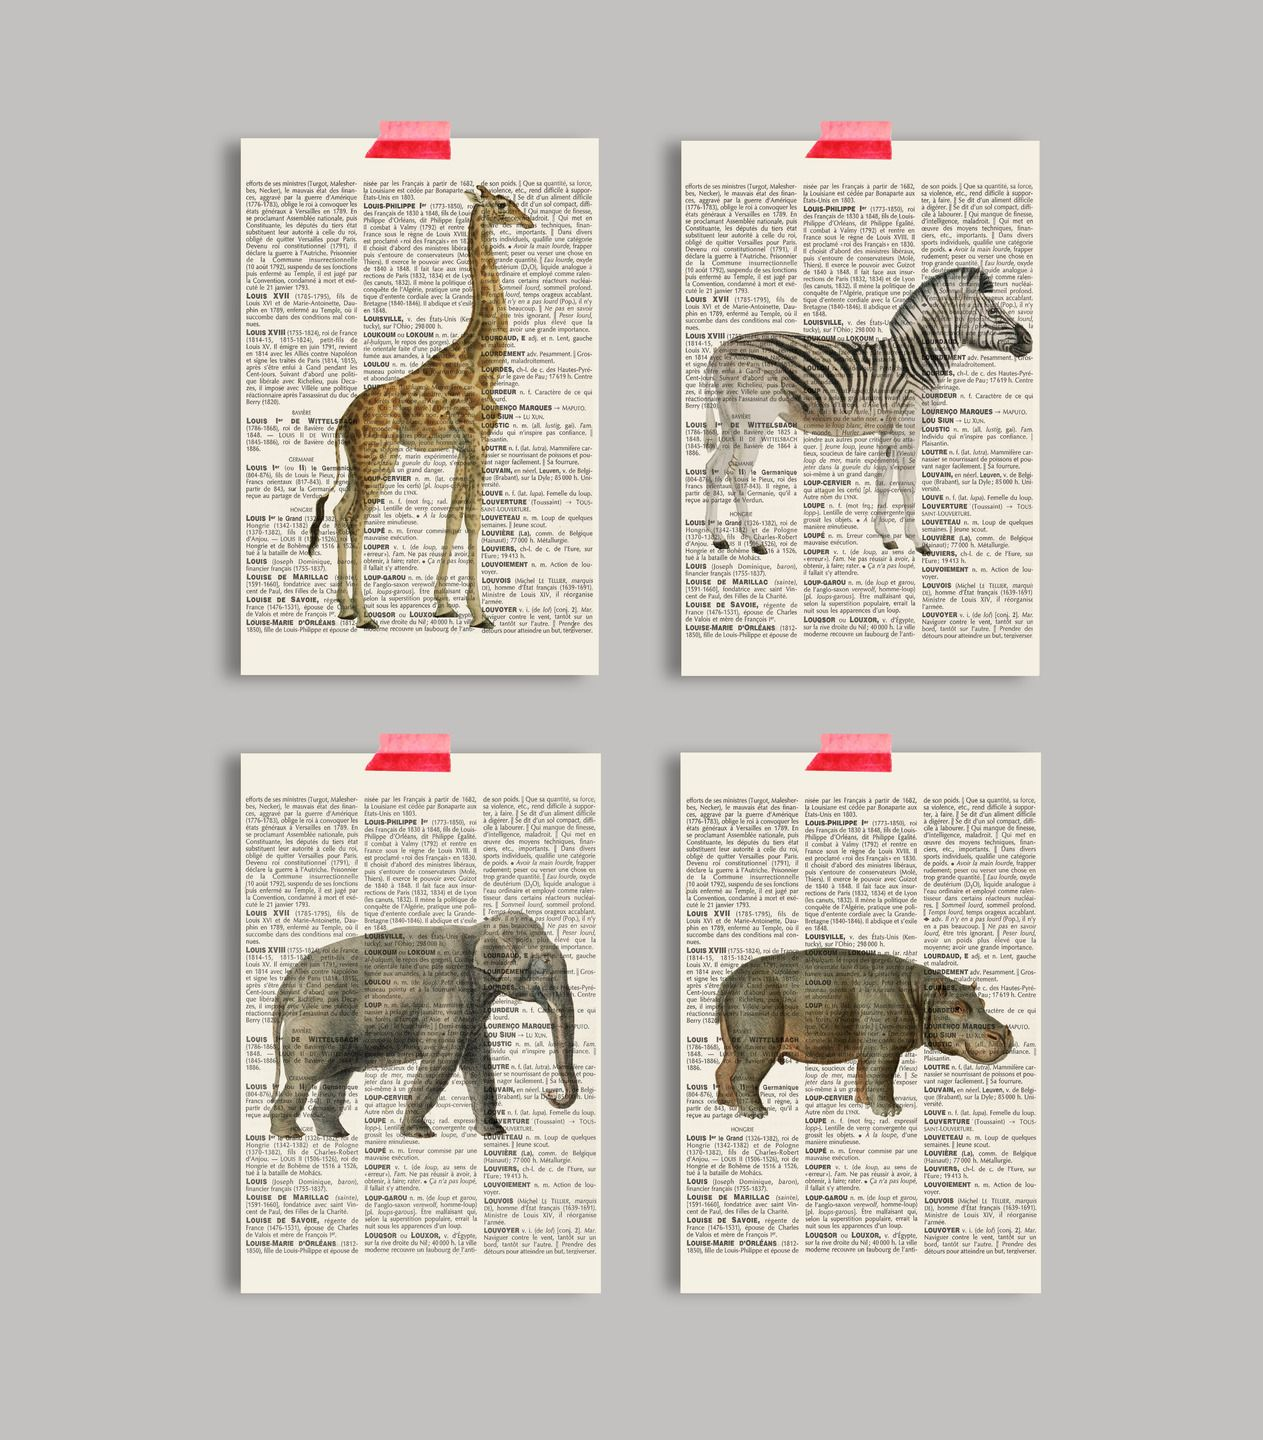 lot de 4 cartes postales d corative safari jungle format 10x15 cartes postales design. Black Bedroom Furniture Sets. Home Design Ideas